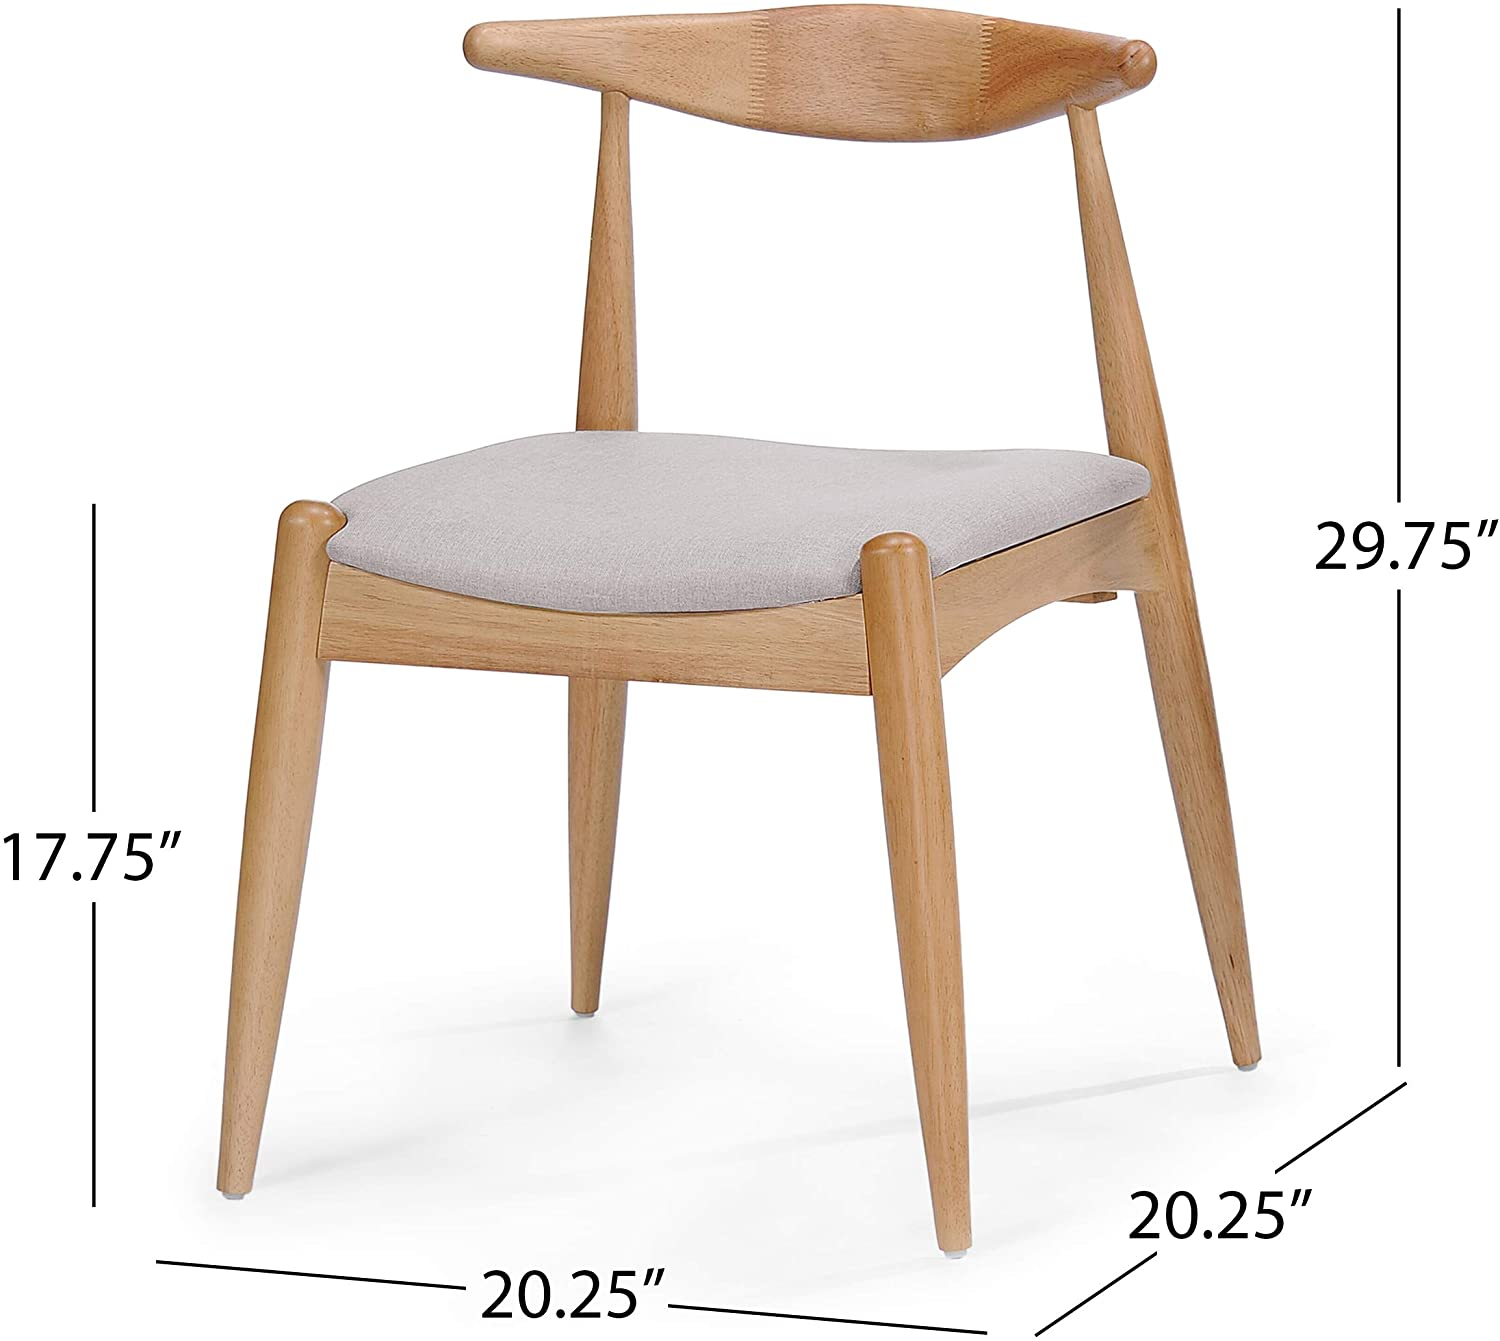 Best Ergonomic Dining Chair: Christopher Knight Home Francie Fabric Chairs.